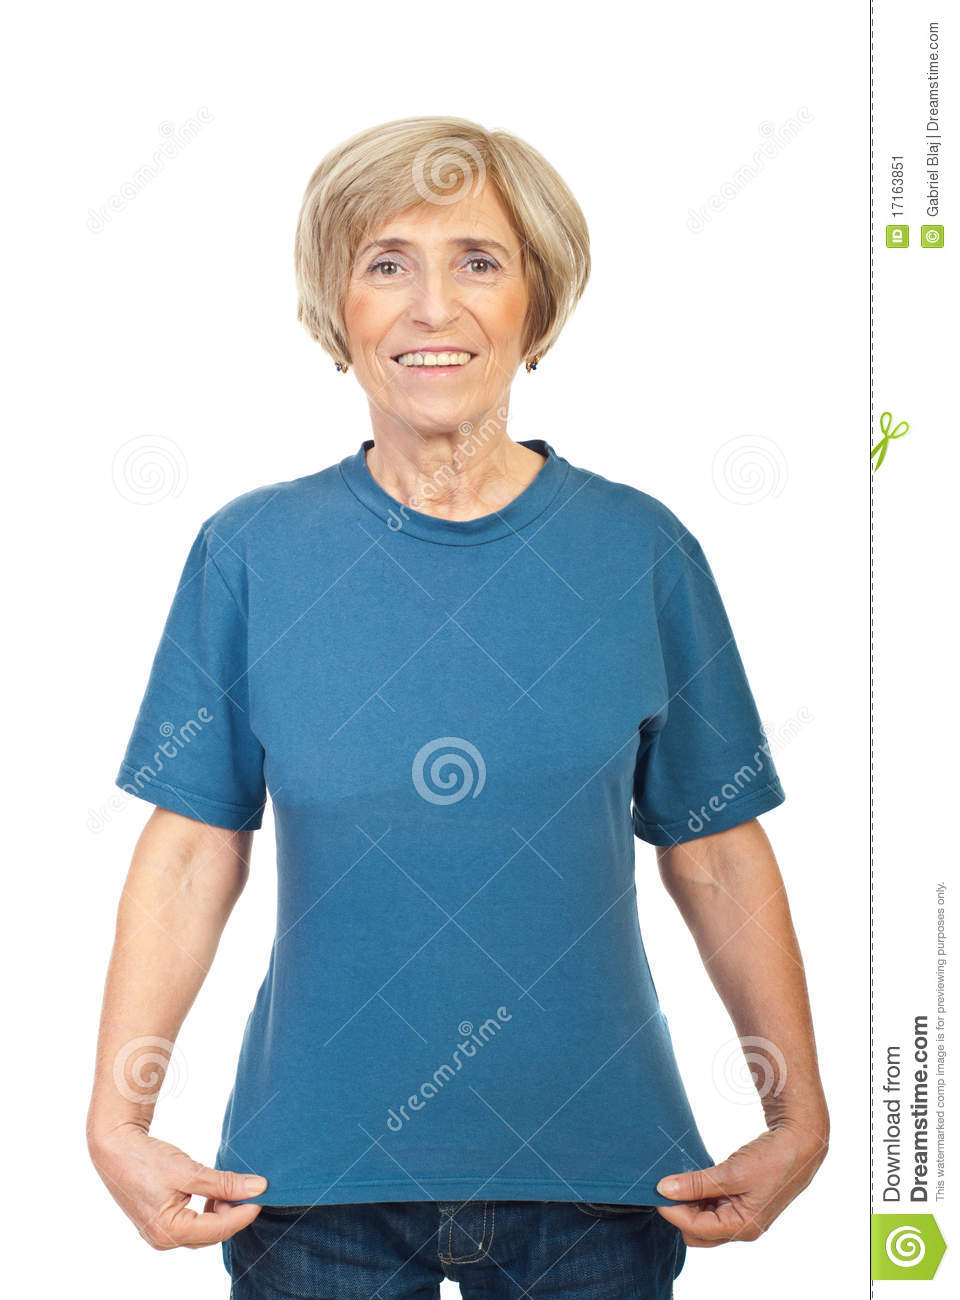 Pity, Mature t shirt were visited